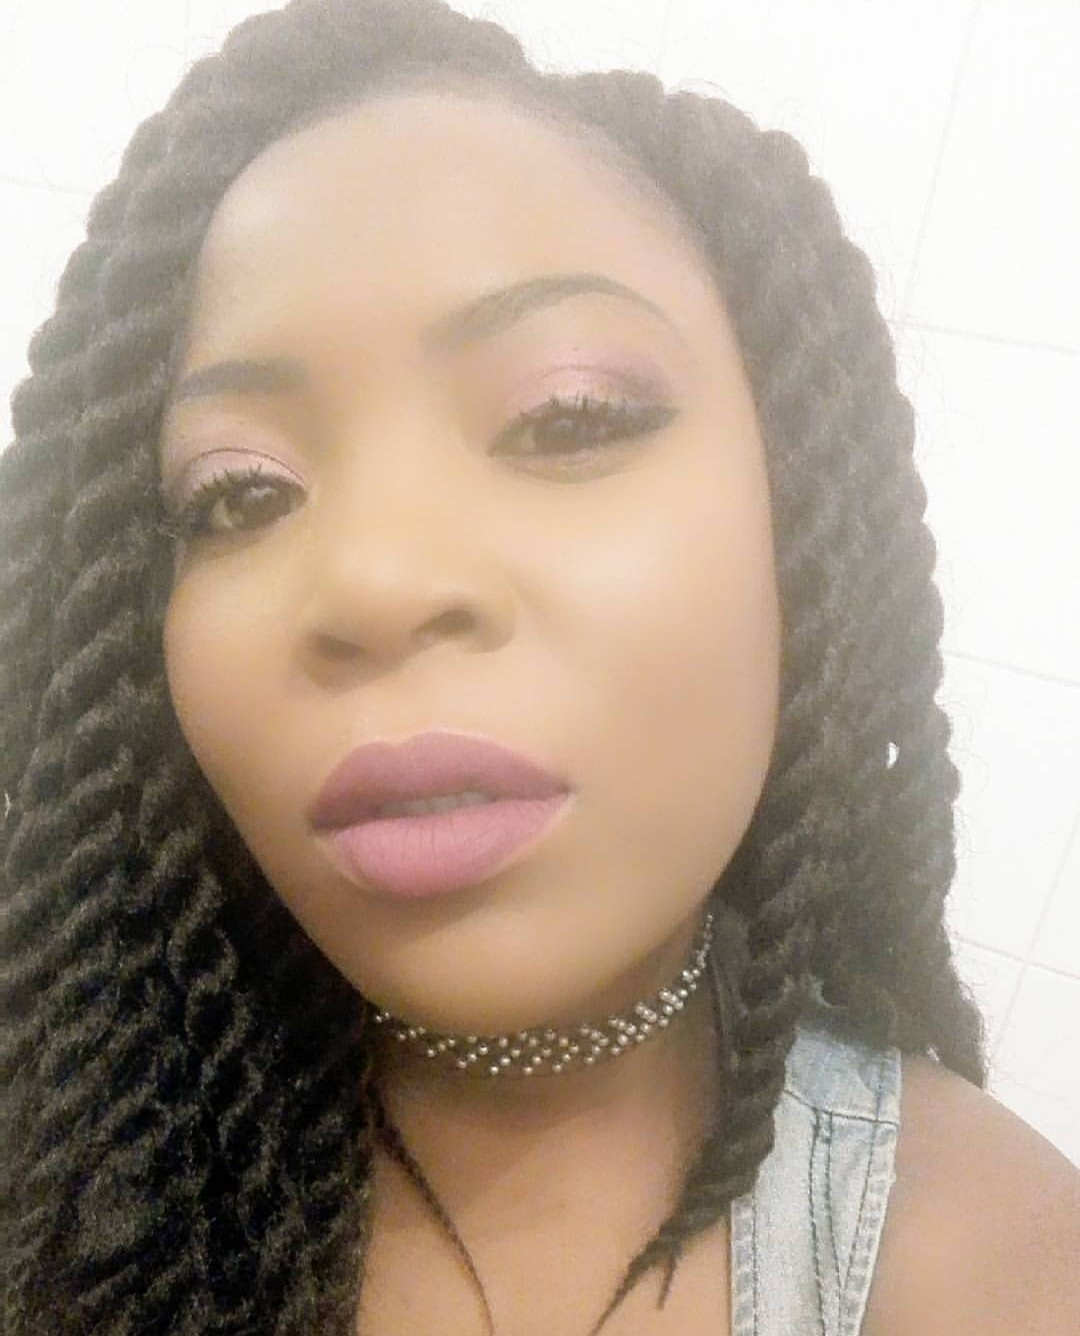 salon de coiffure afro tresse tresses box braids crochet braids vanilles tissages paris 75 77 78 91 92 93 94 95 NSDNMDLG